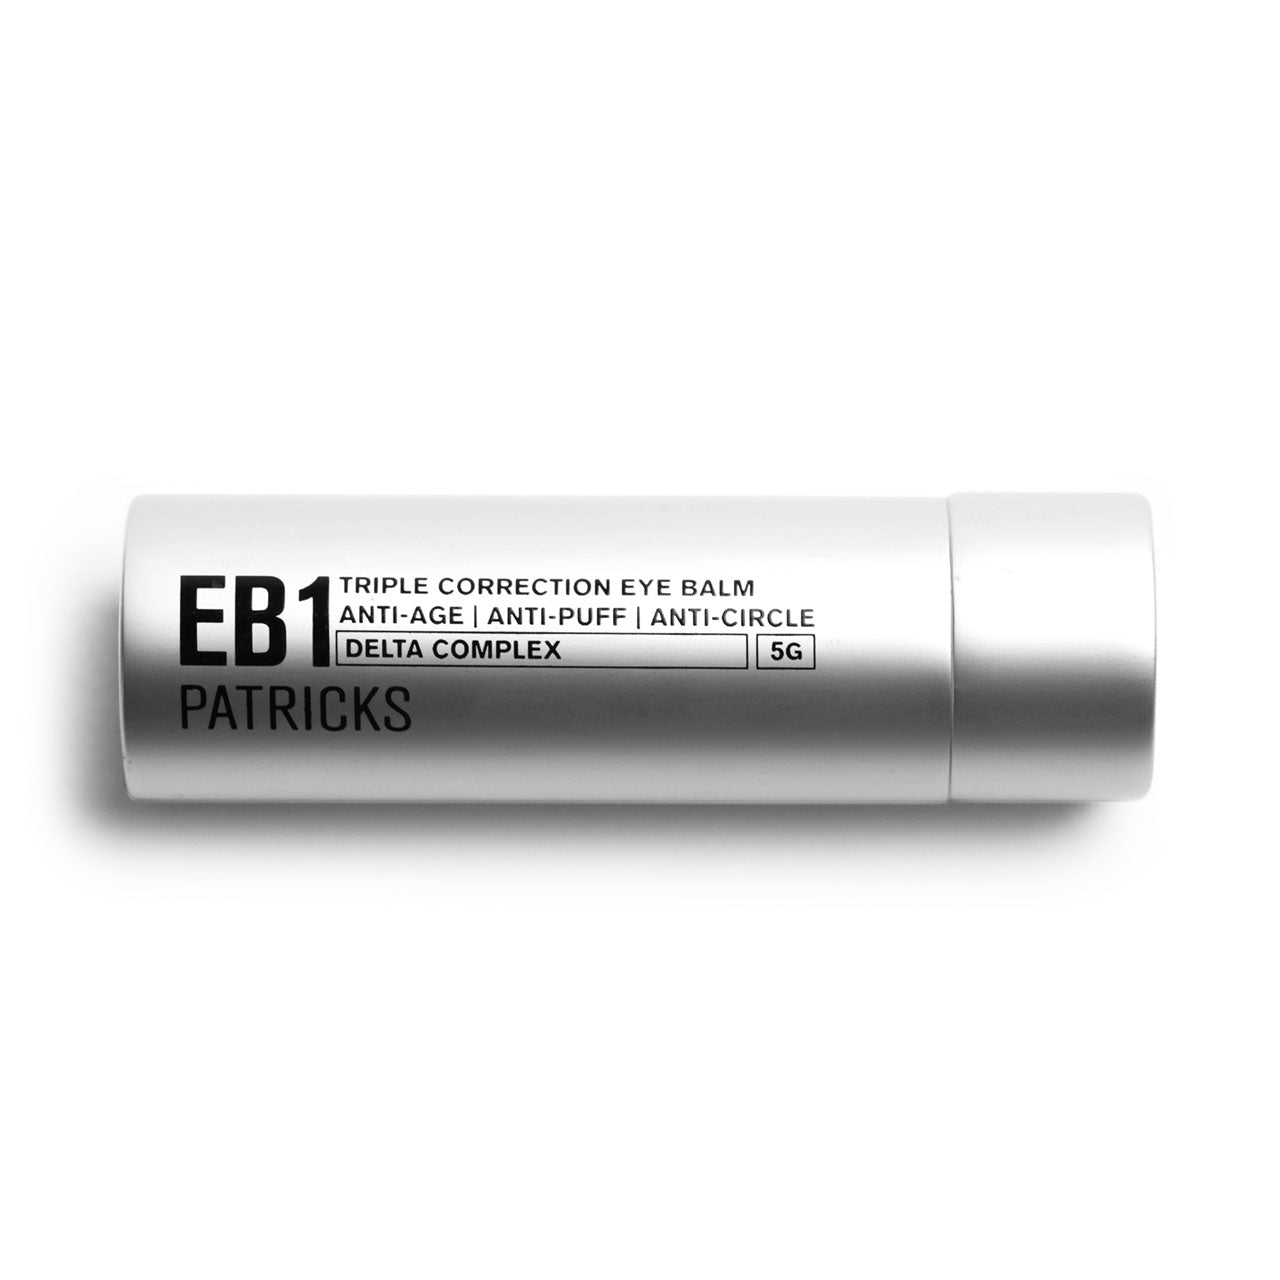 Patricks EB1 Eye Balm